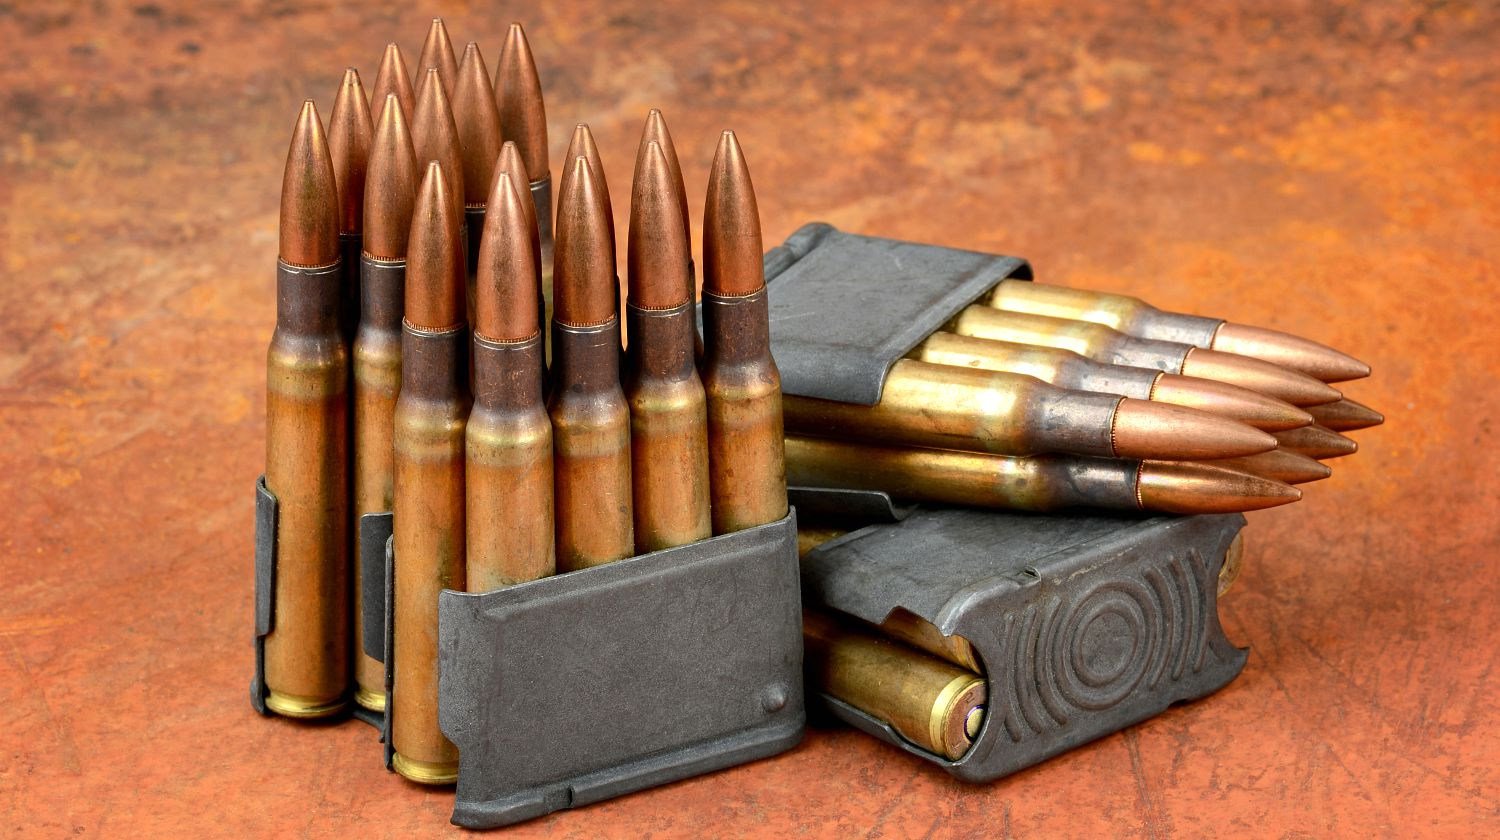 World war II M1 clips and 30-06 ammunition on rusty background | Modern Shooter: .30-06 Springfield | Featured